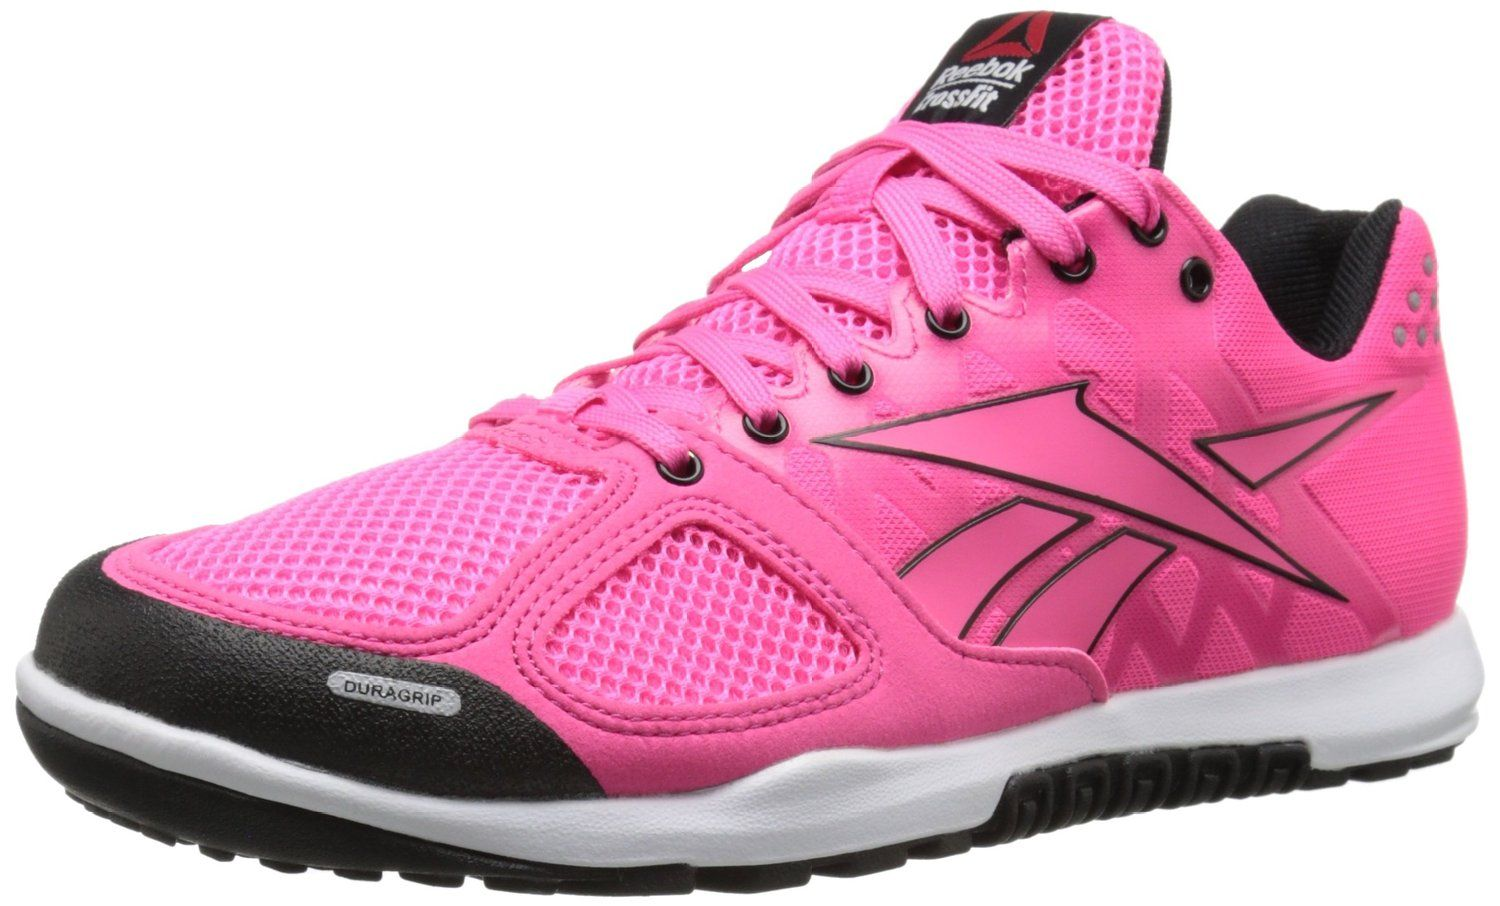 3bc0c1c79e15 Amazon.com  Reebok Women s Crossfit Nano 2.0 Cross-Training Shoe  Clothing